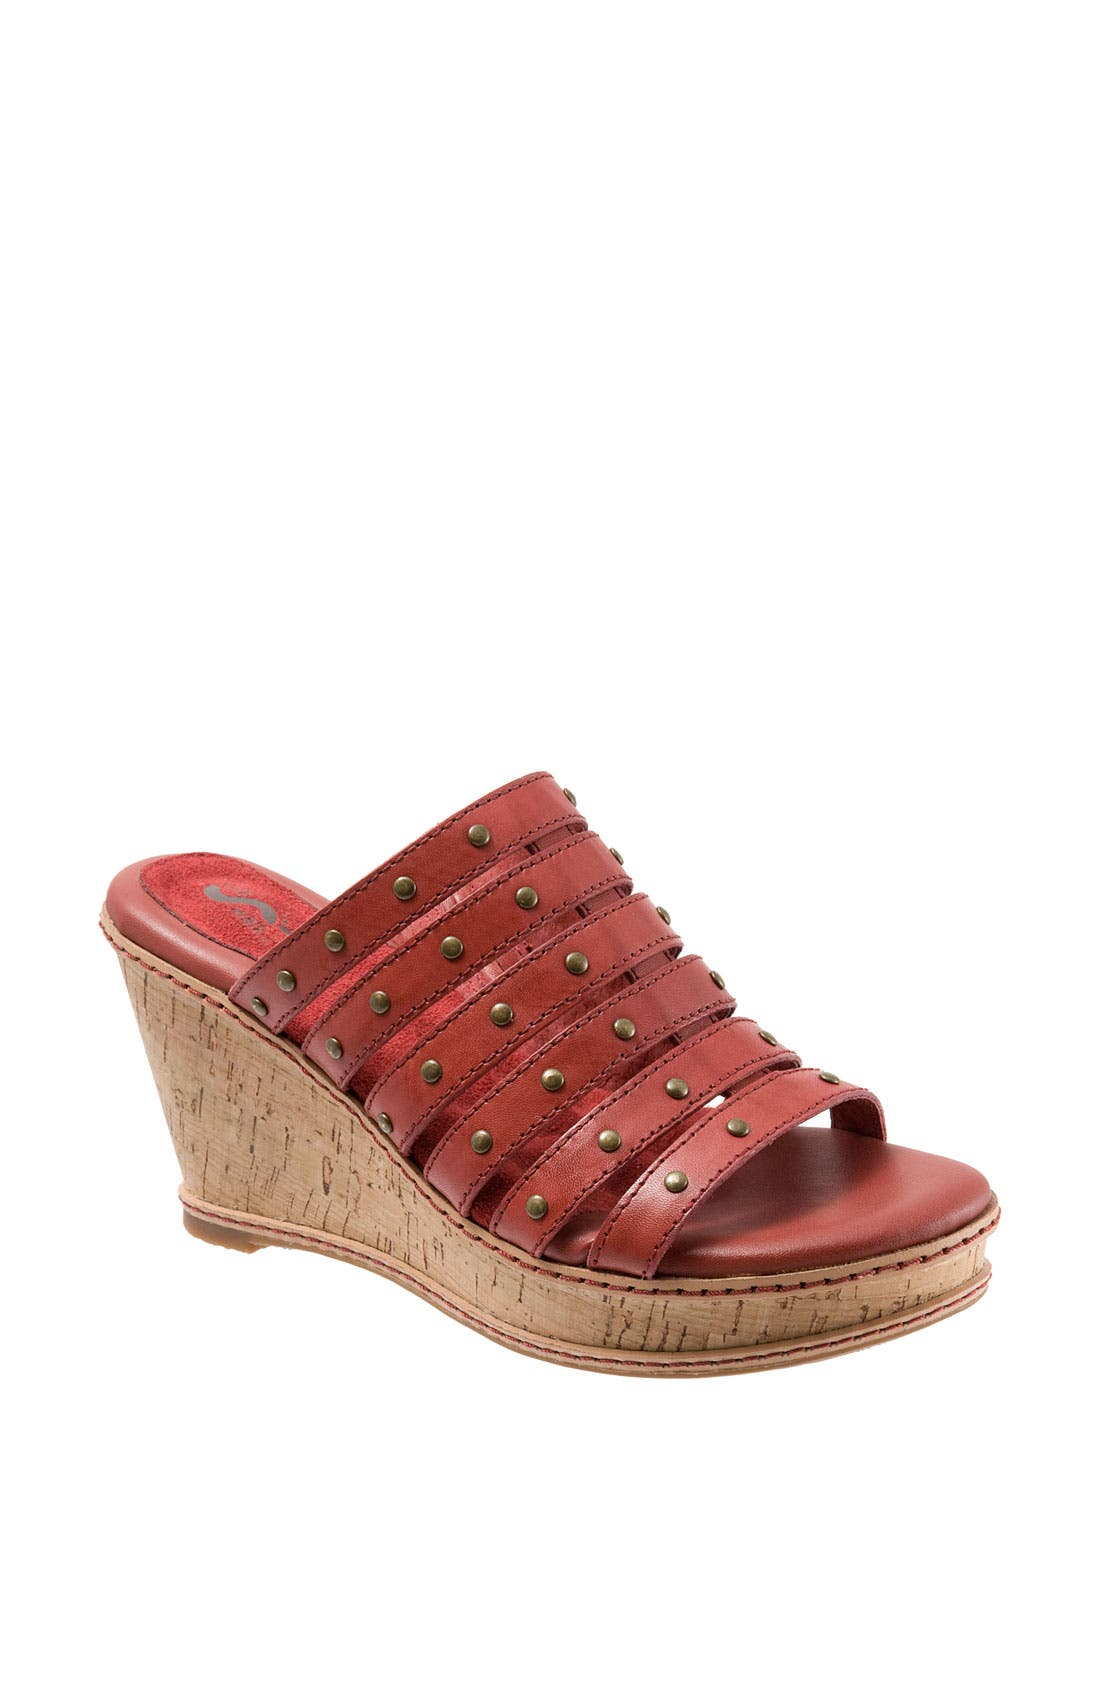 Alternate Image 1 Selected - SoftWalk® 'San Fran' Wedge Sandal